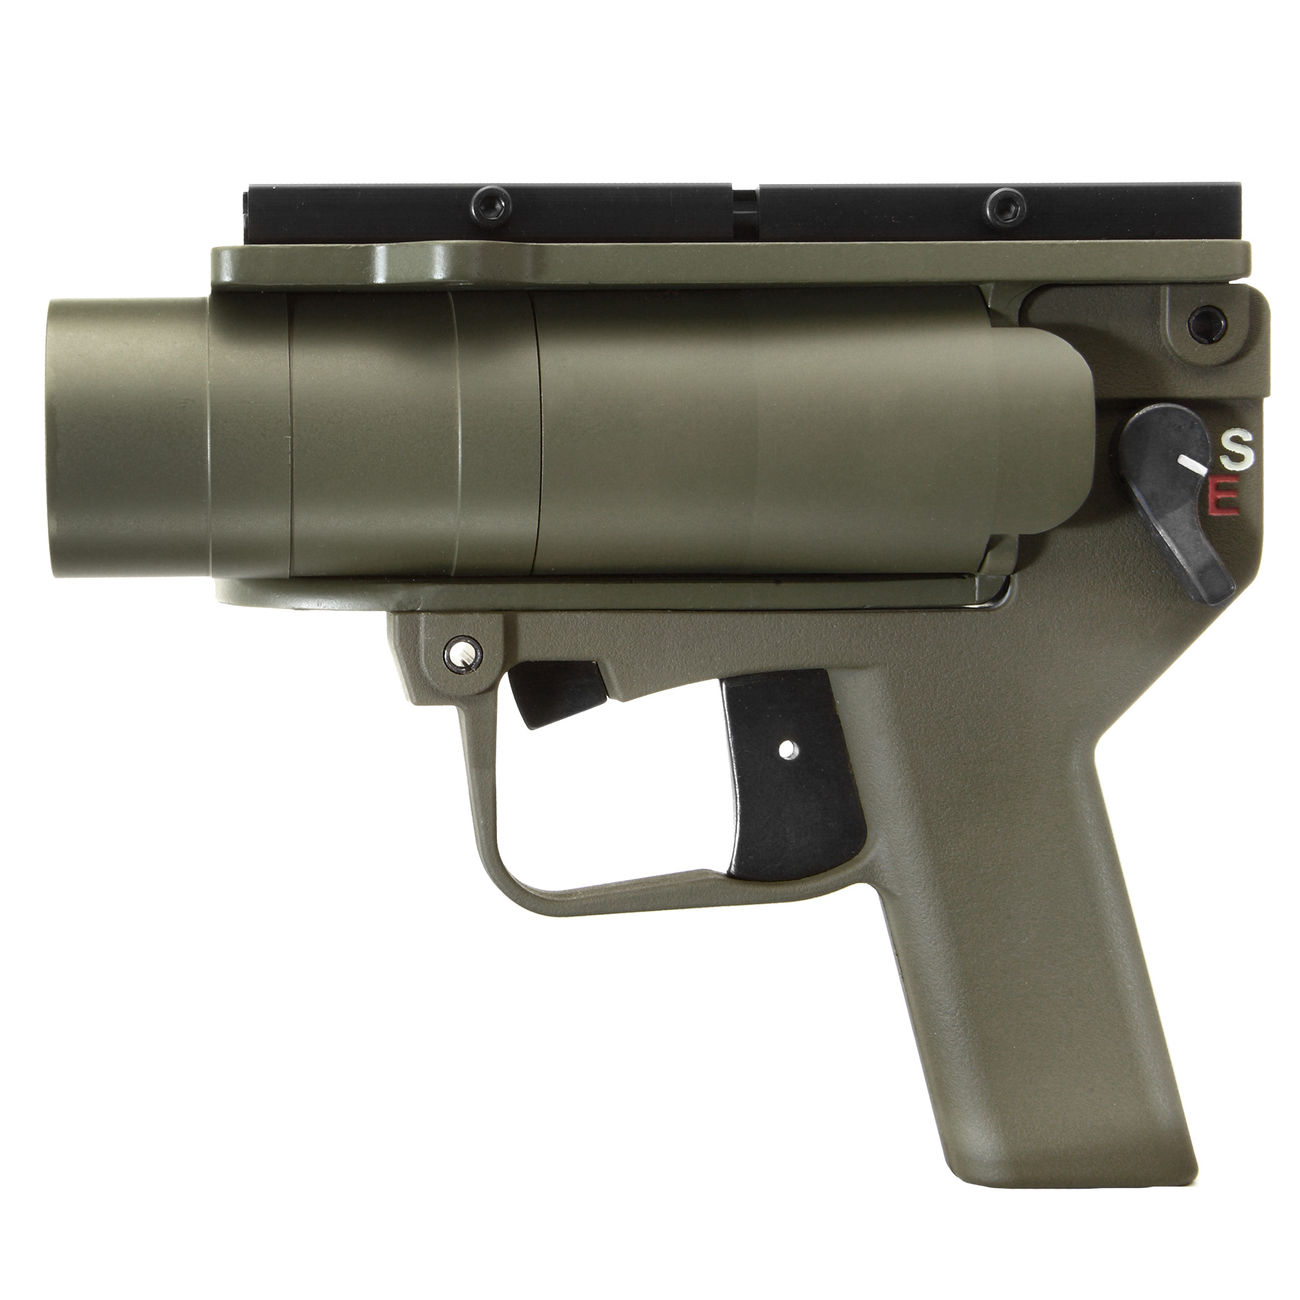 Mad Bull AGX 40mm Vollmetall Airsoft Pistolen-Launcher oliv 1